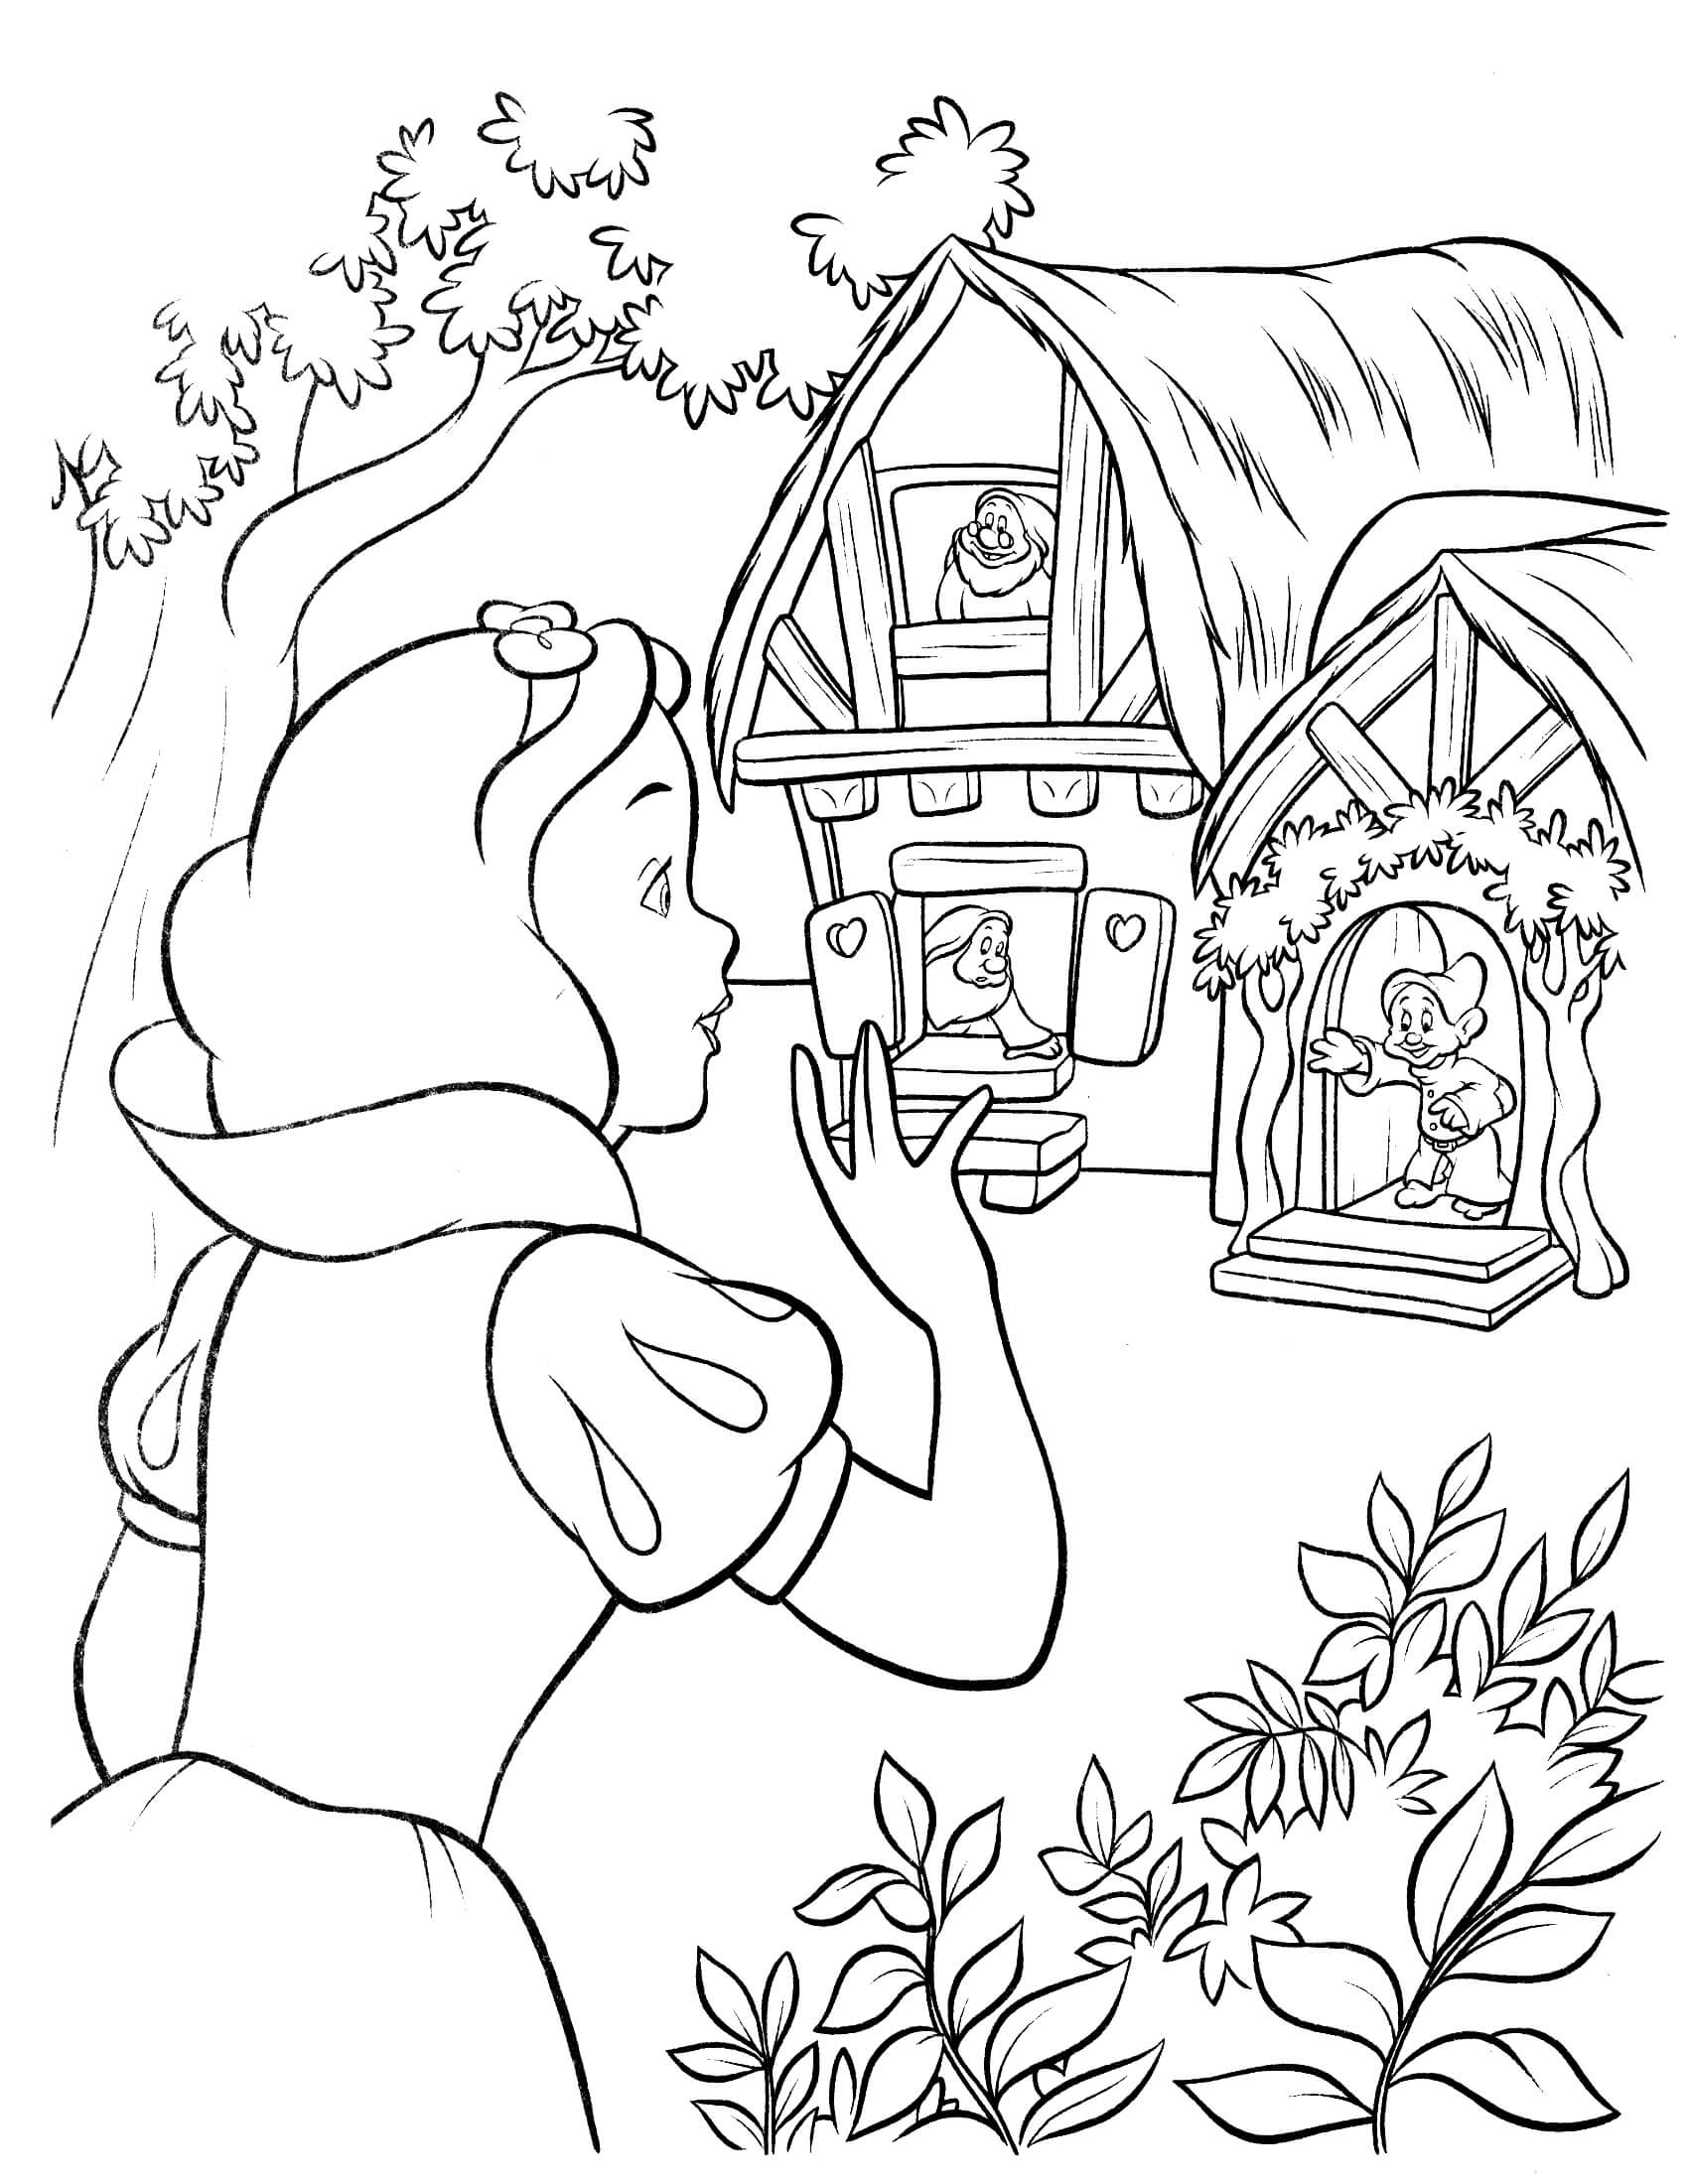 free snow white coloring pages princess snow white coloring pages for kids printable snow free pages white coloring